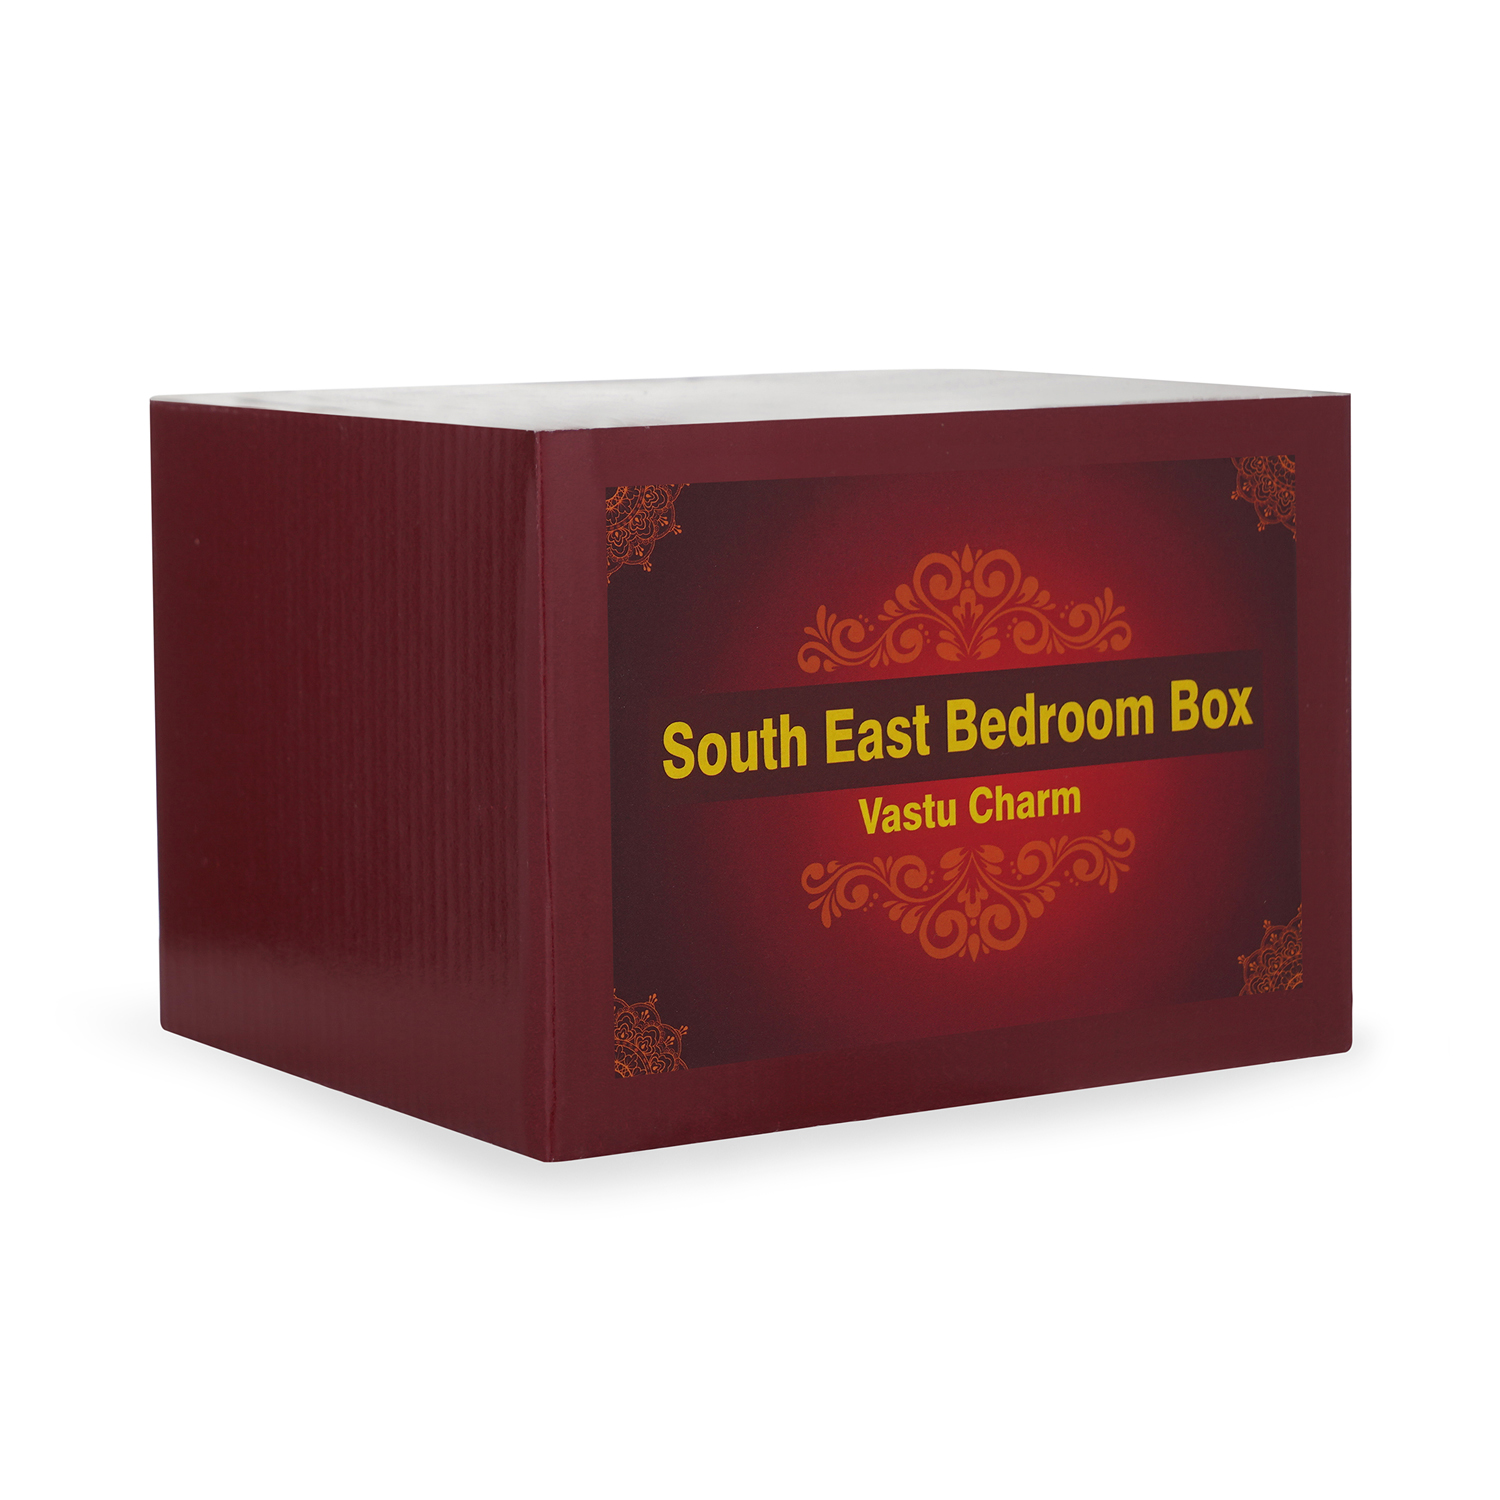 South East Bedroom Box